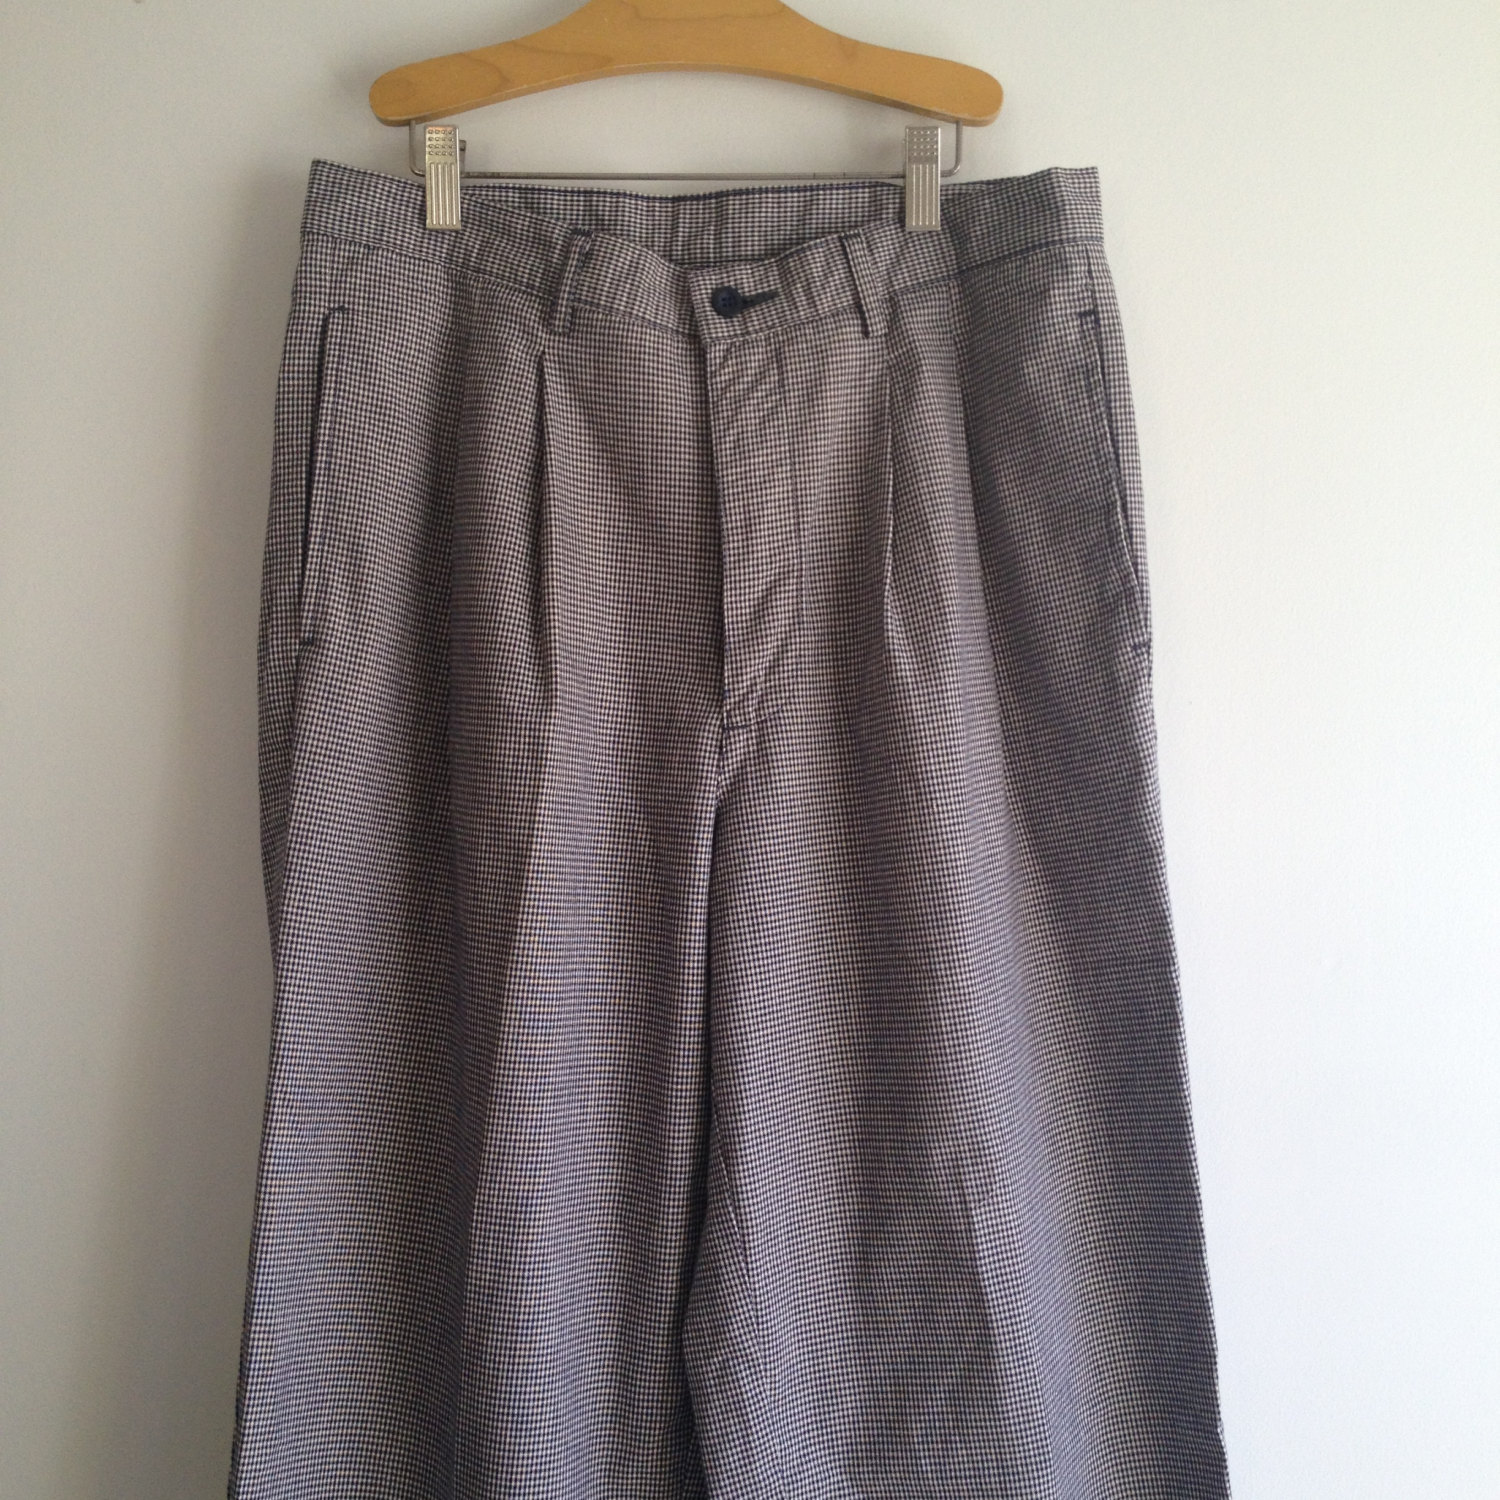 vintage 80s GAP mens HOUNDSTOOTH pleated pants 32 x 34 by Vintspiration